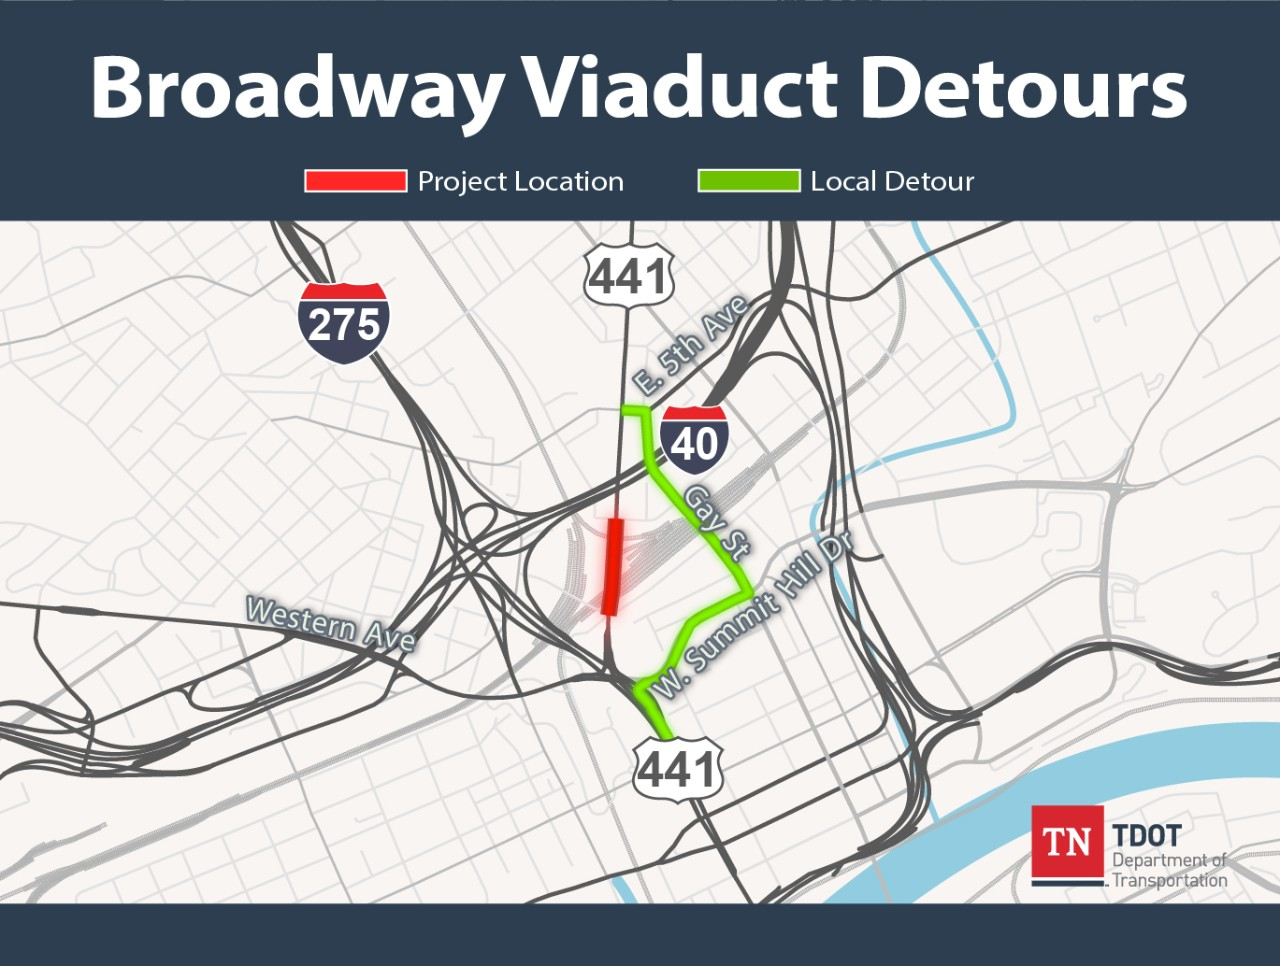 Broadway Viaduct Local Detours